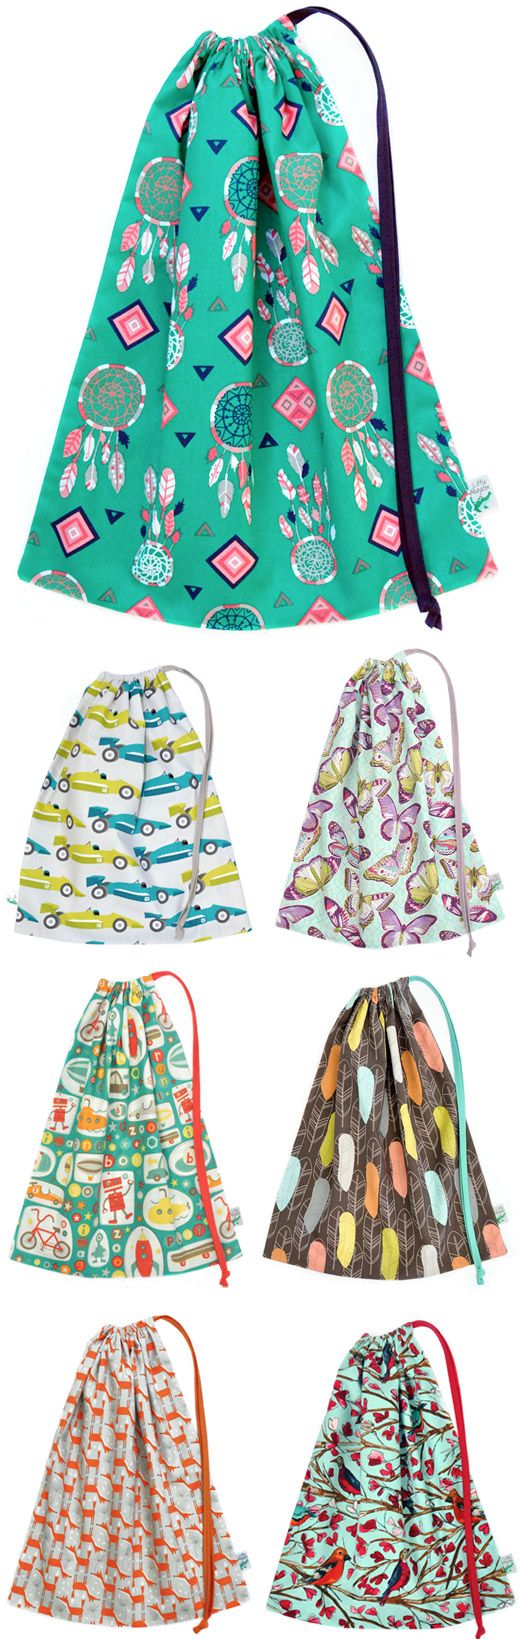 Kid Independent featuring Little Alligator Bags - Library Bags, Drawstring Bags, Christmas Bags, Children's Bags